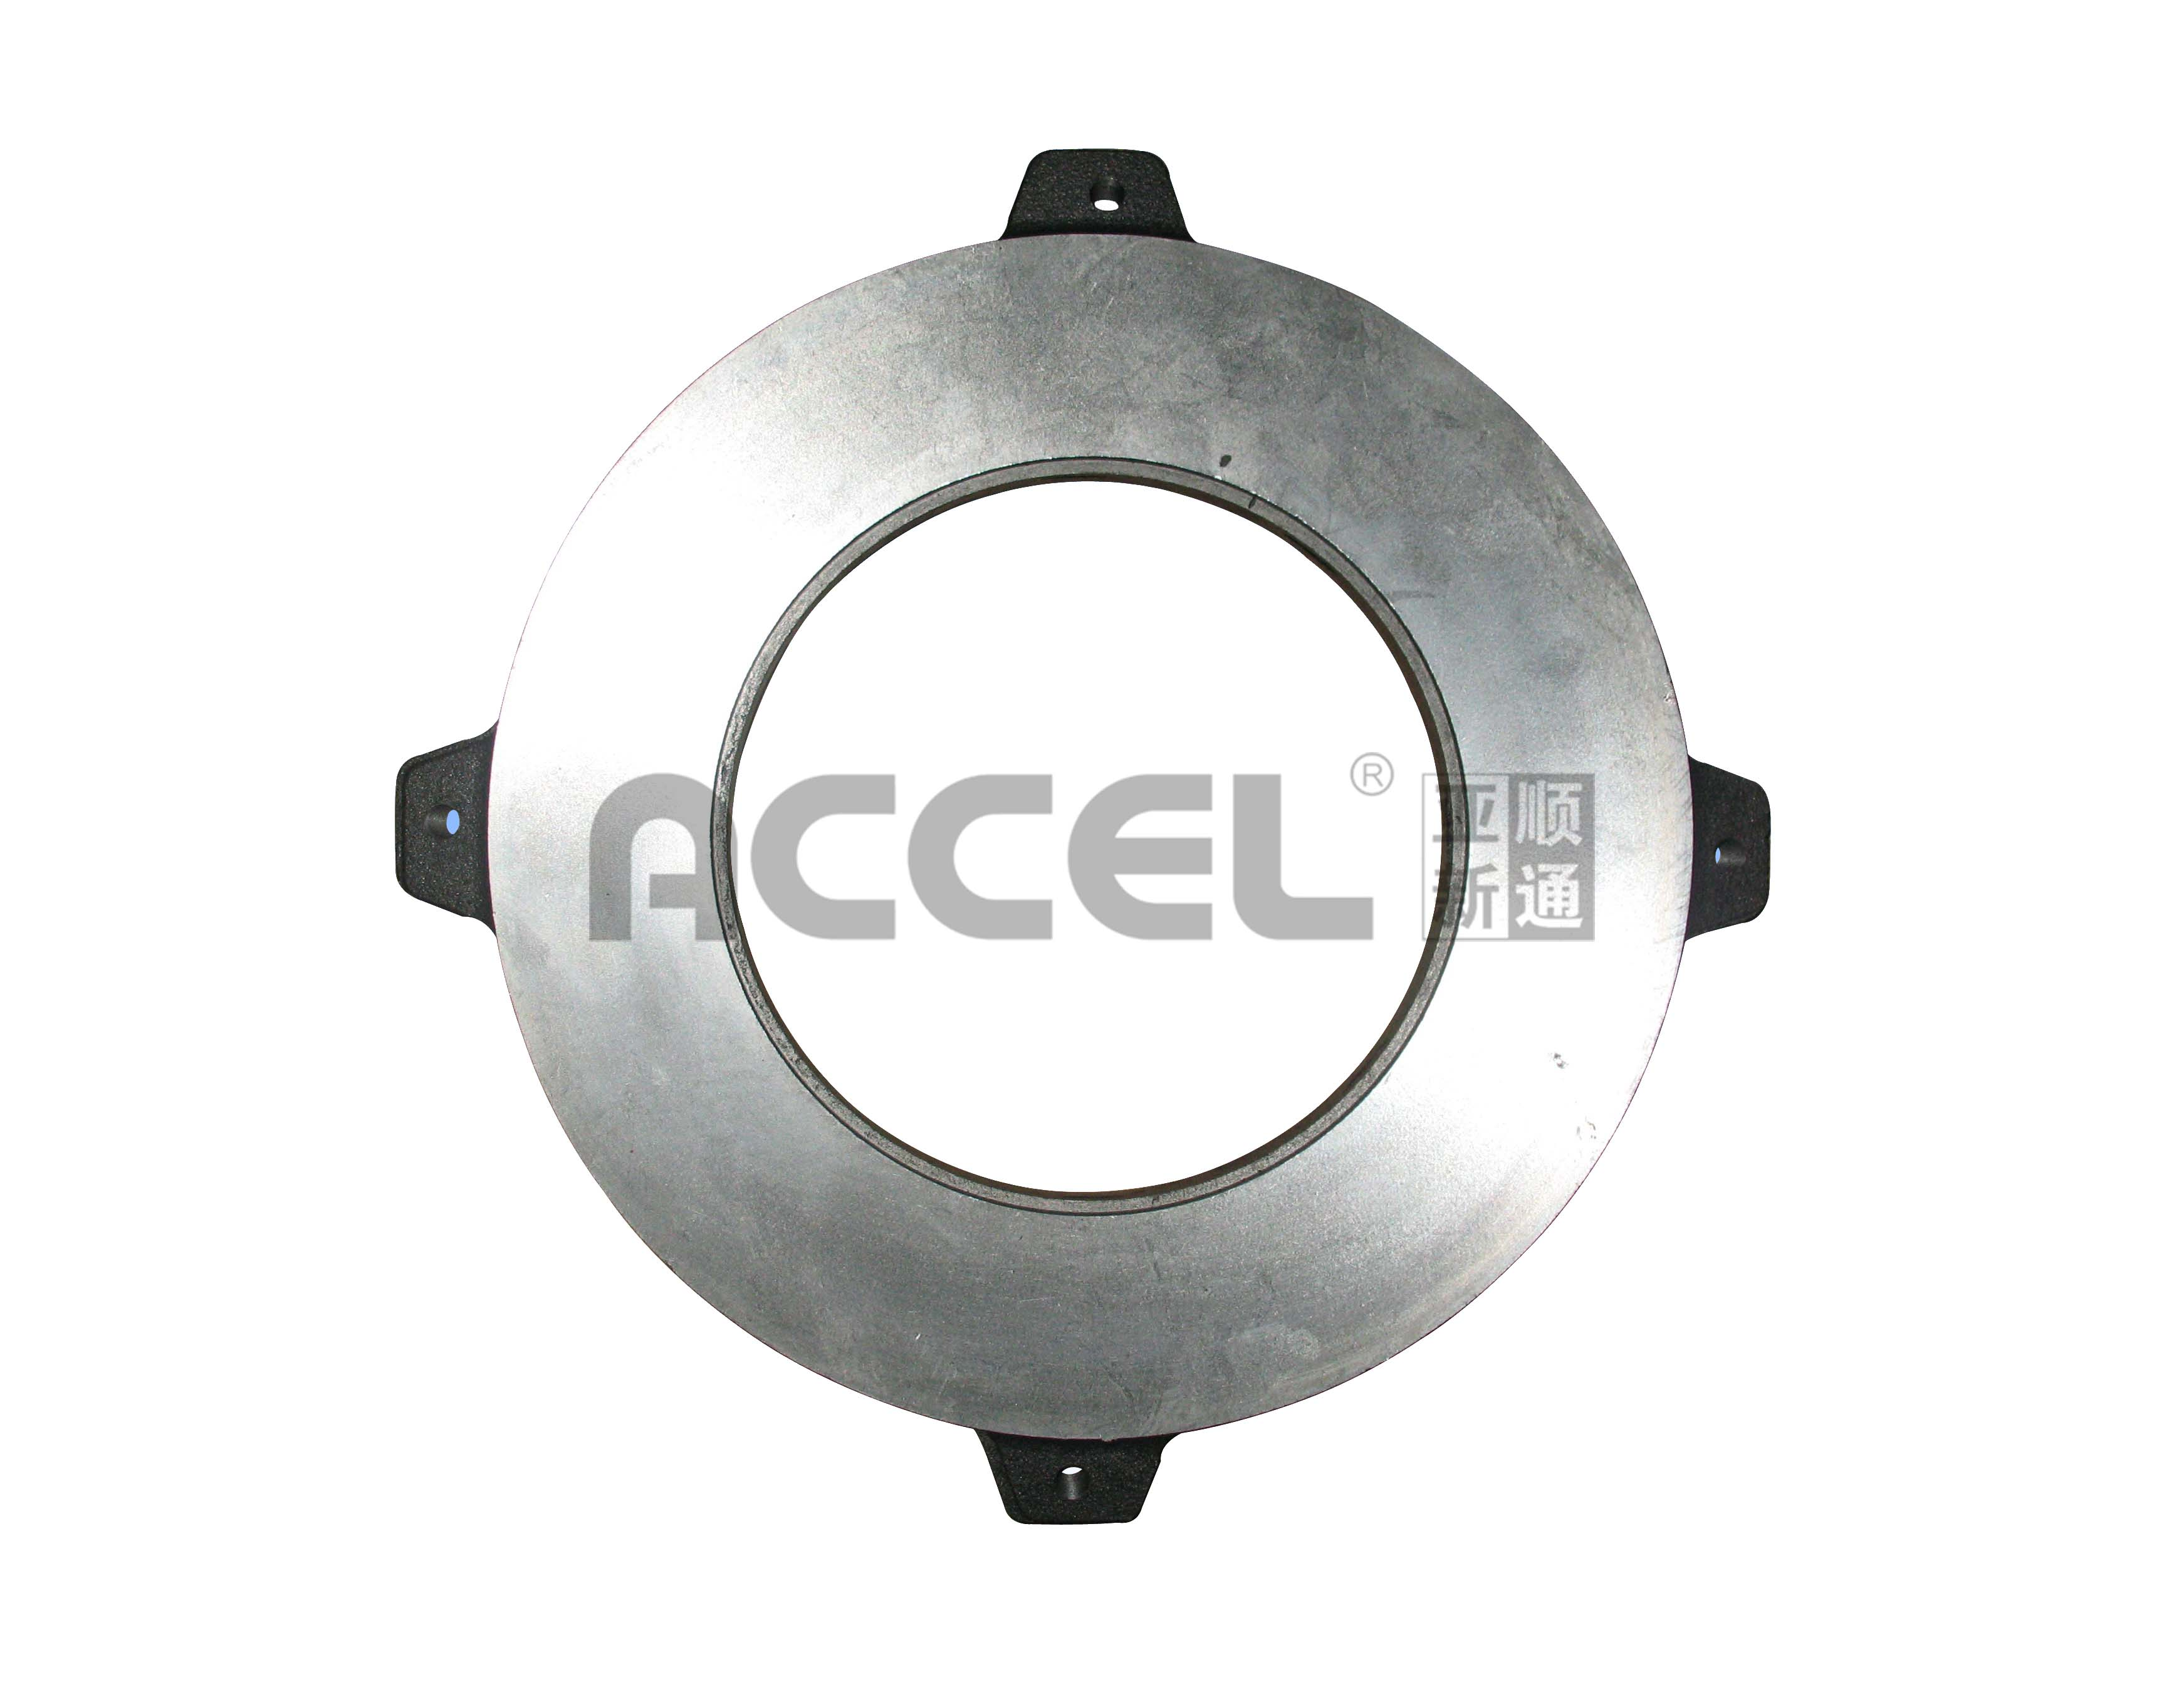 Clutch Cover/OE:NULL/0*0/IPP-008/LS/LZ007